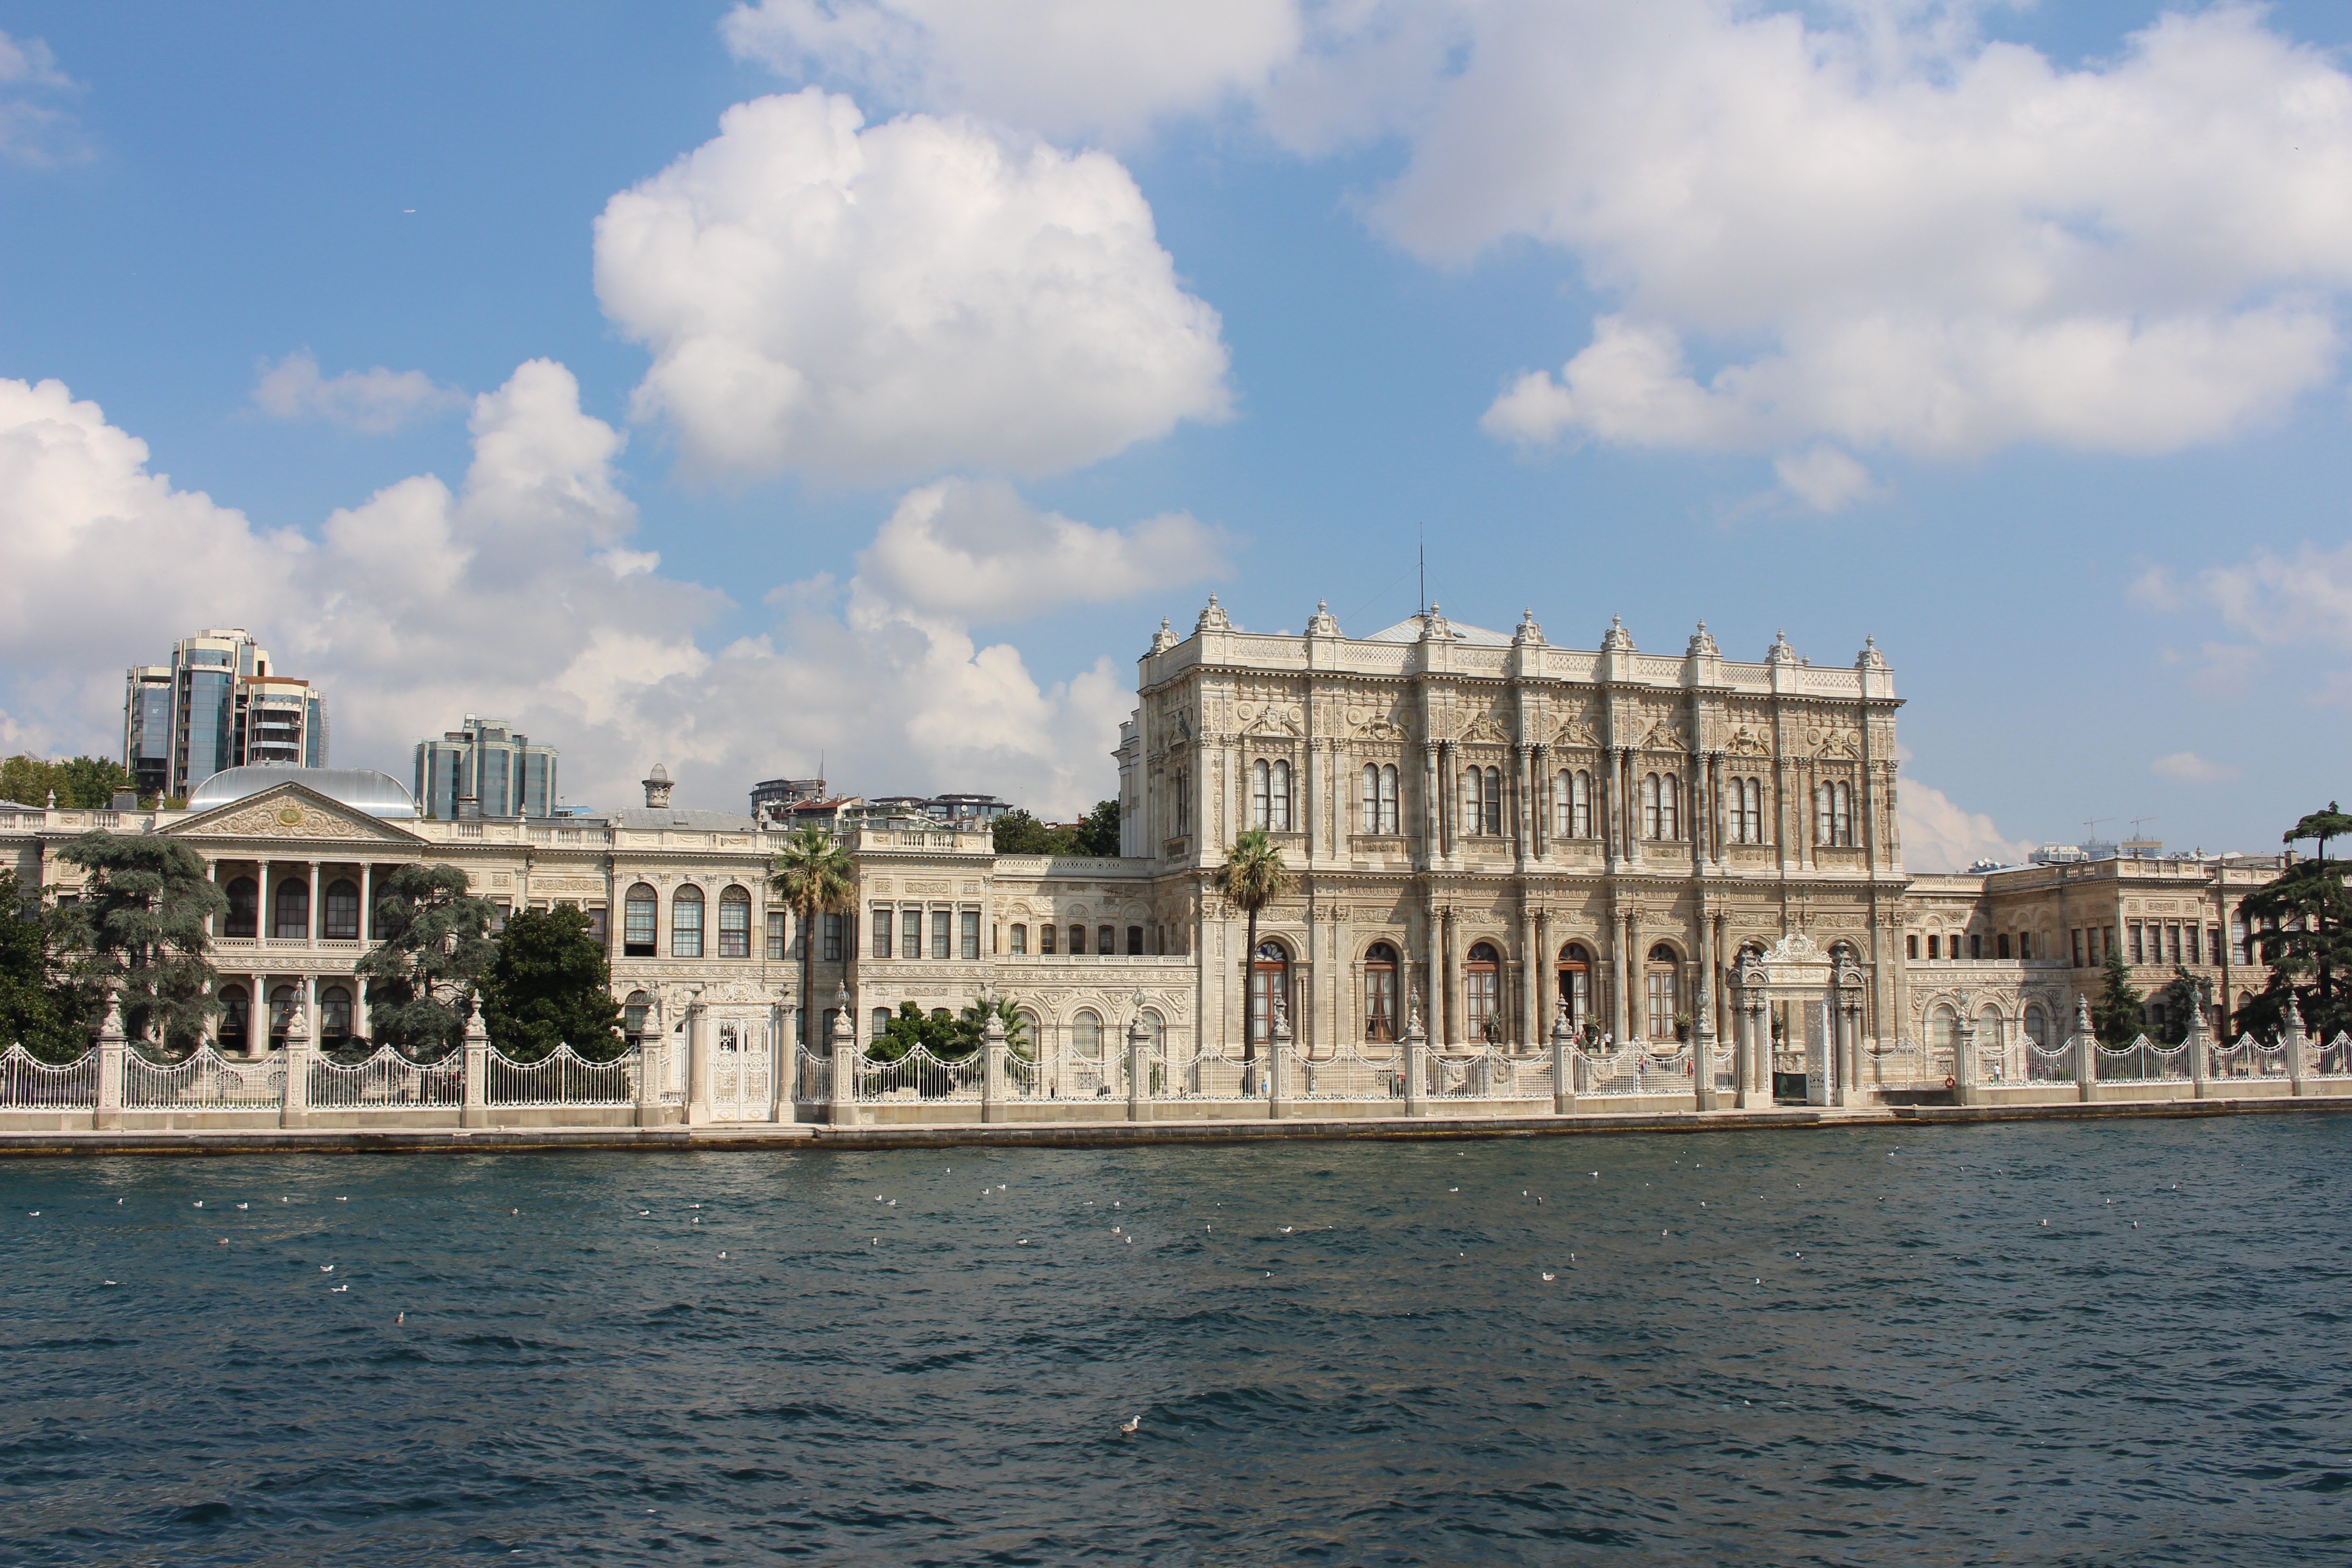 Istanbul's Dolmabahce Palace Looks Out Over The Bosphorus Strait, Which Separates Europe And Asia. Photo By Jack Hennessy.